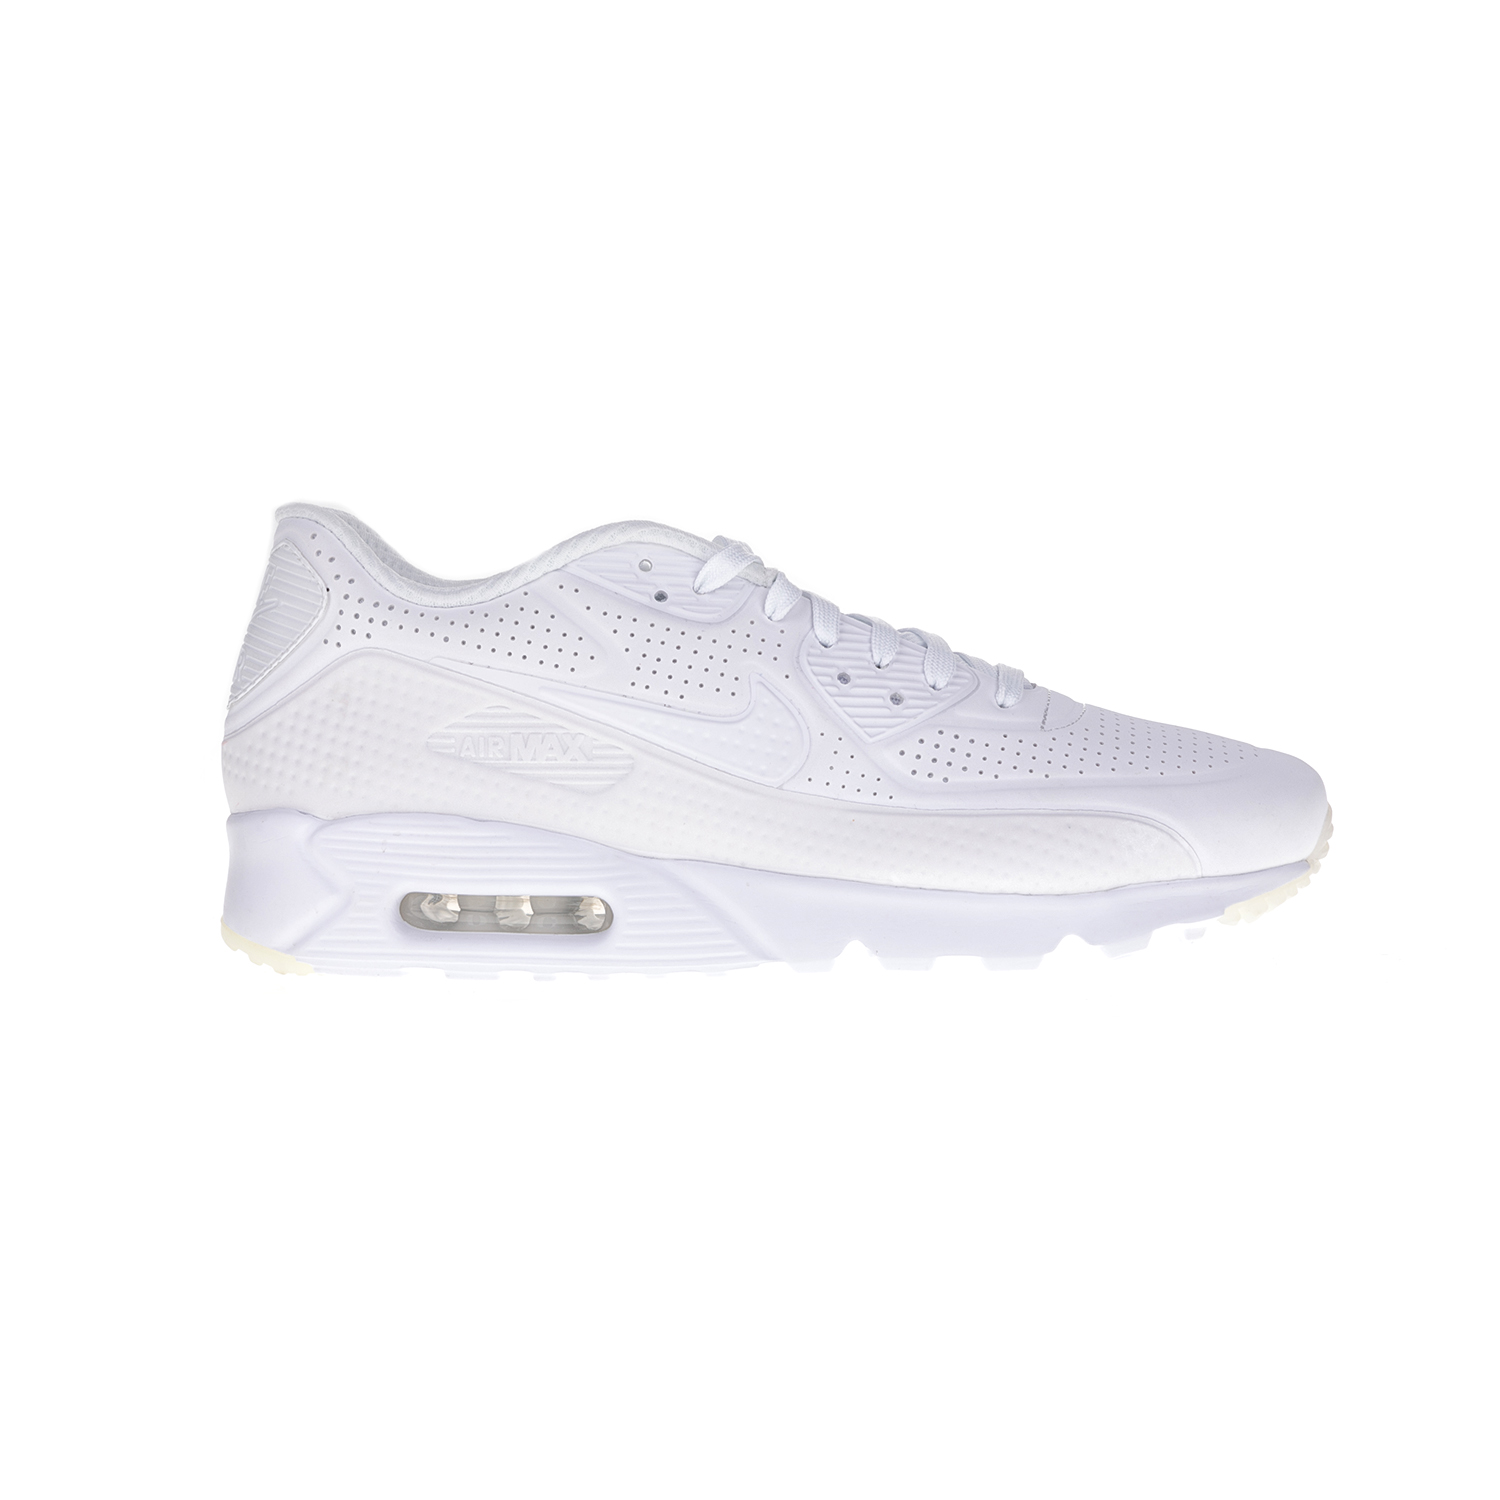 NIKE – Ανδρικά παπούτσια NIKE AIR MAX 90 ULTRA MOIRE λευκά